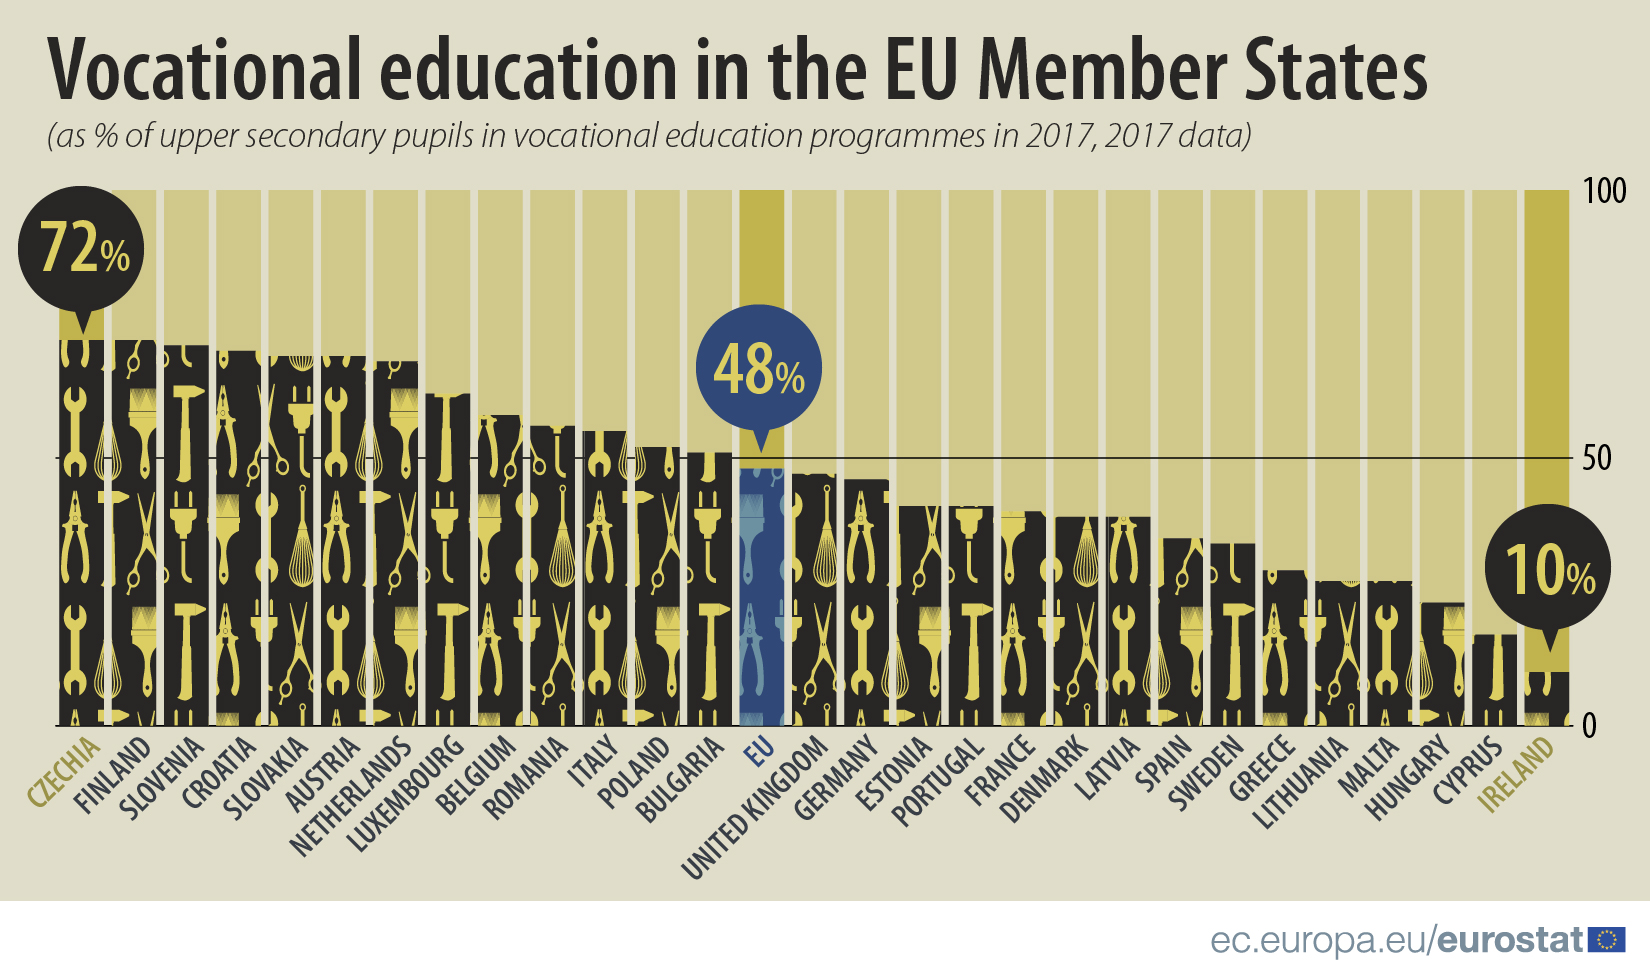 Vocational education in the EU Member States, 2017